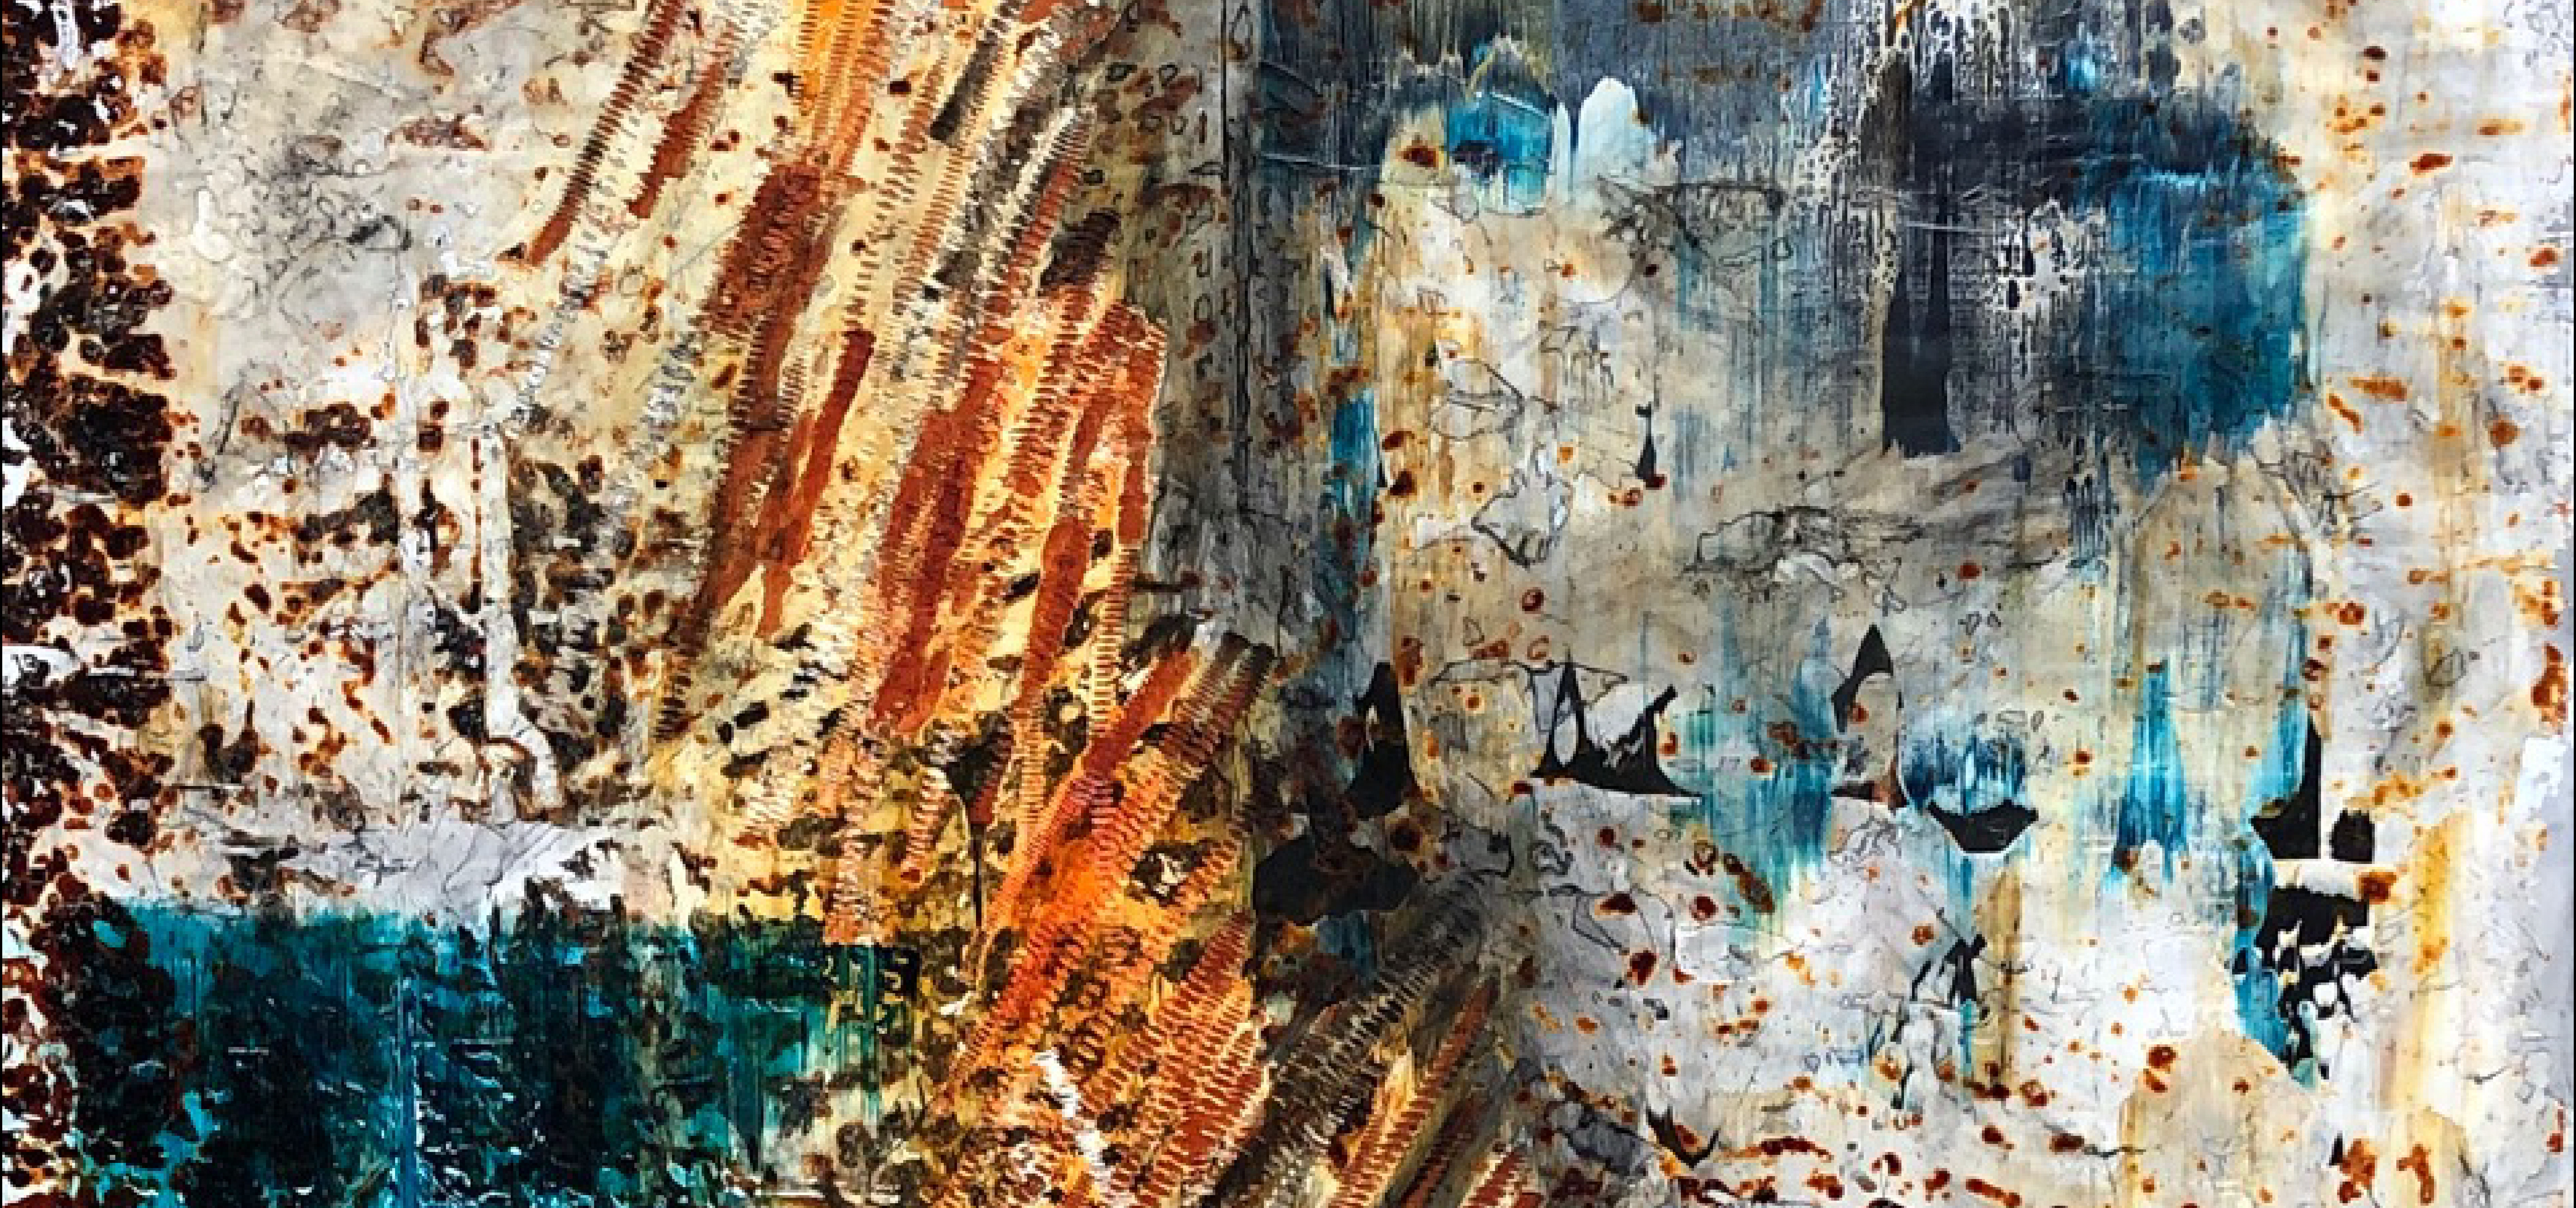 Abstract painting by Robyn Horn